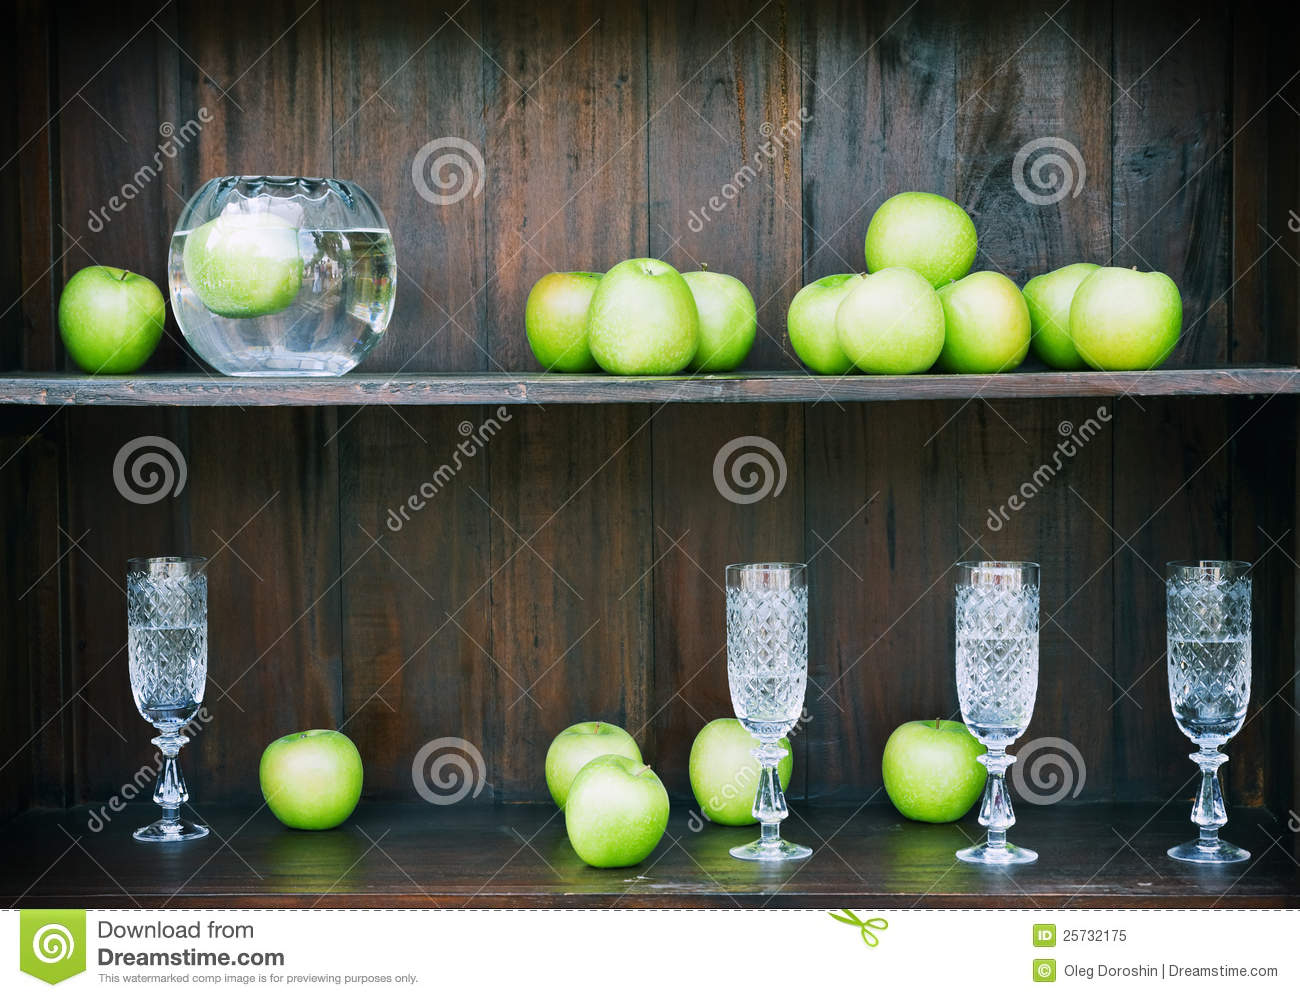 Crystal glasses and green apples